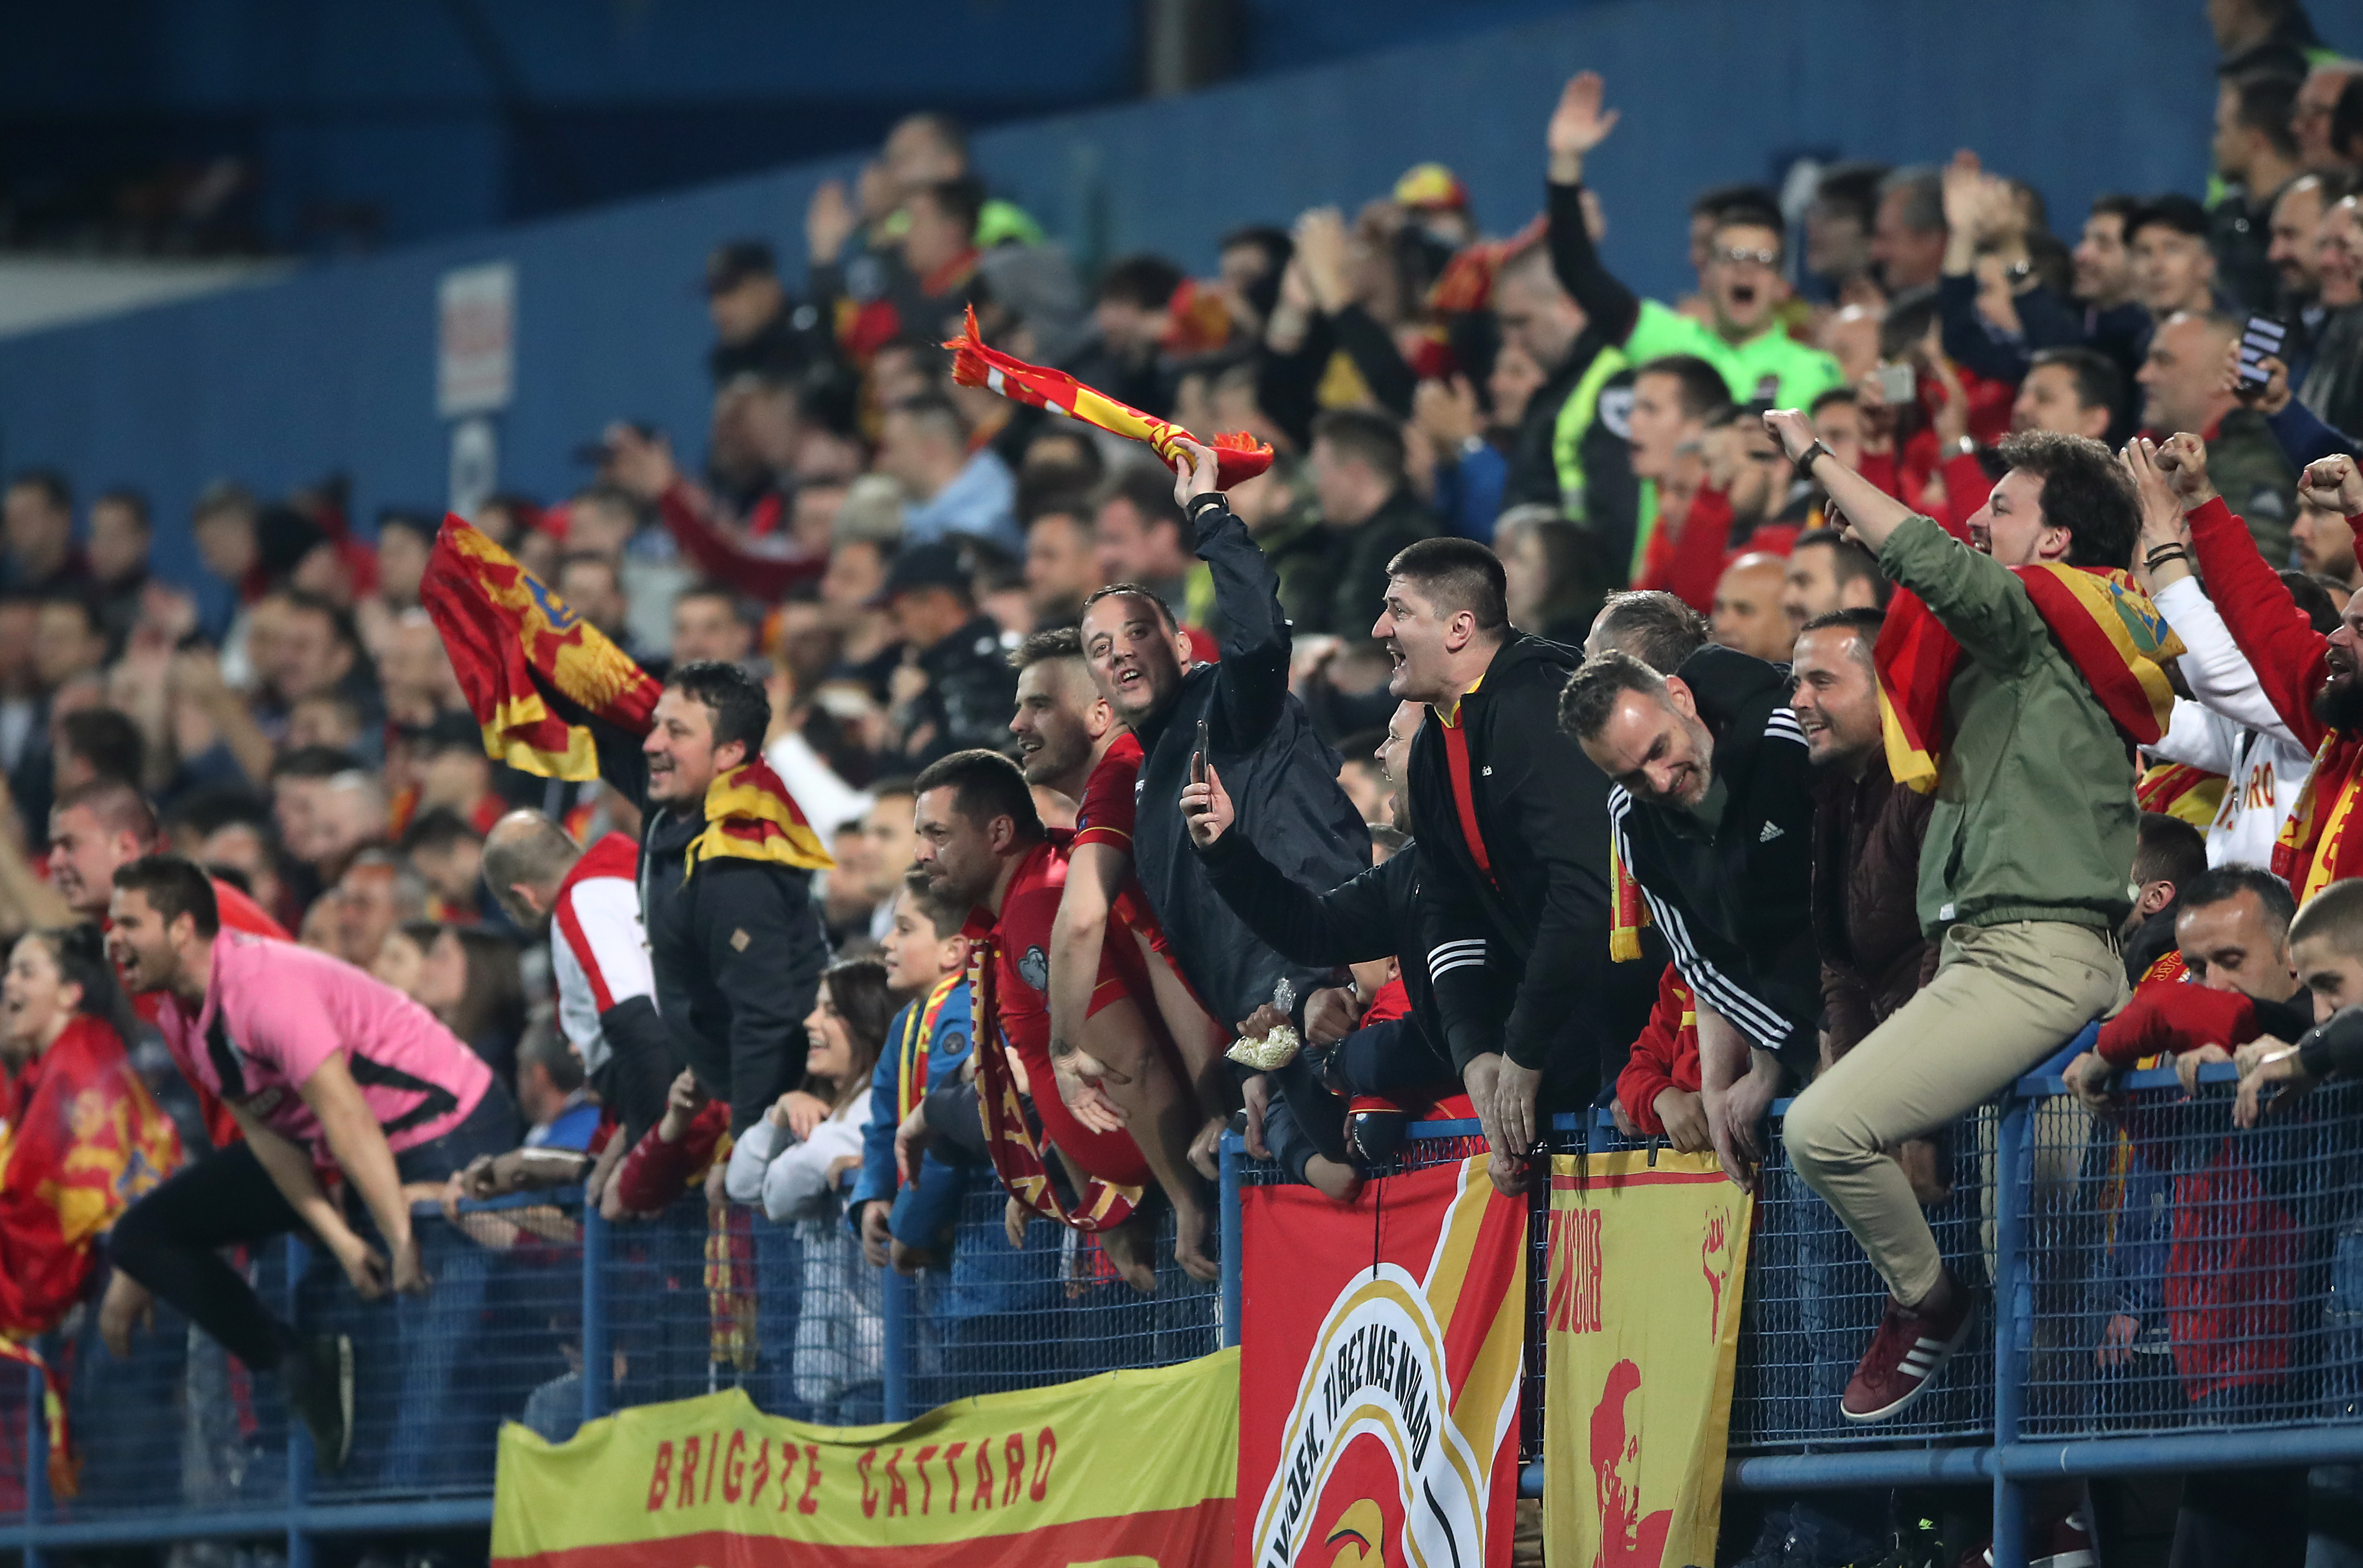 Montenegro fans during the Euro 2020 qualifier against England